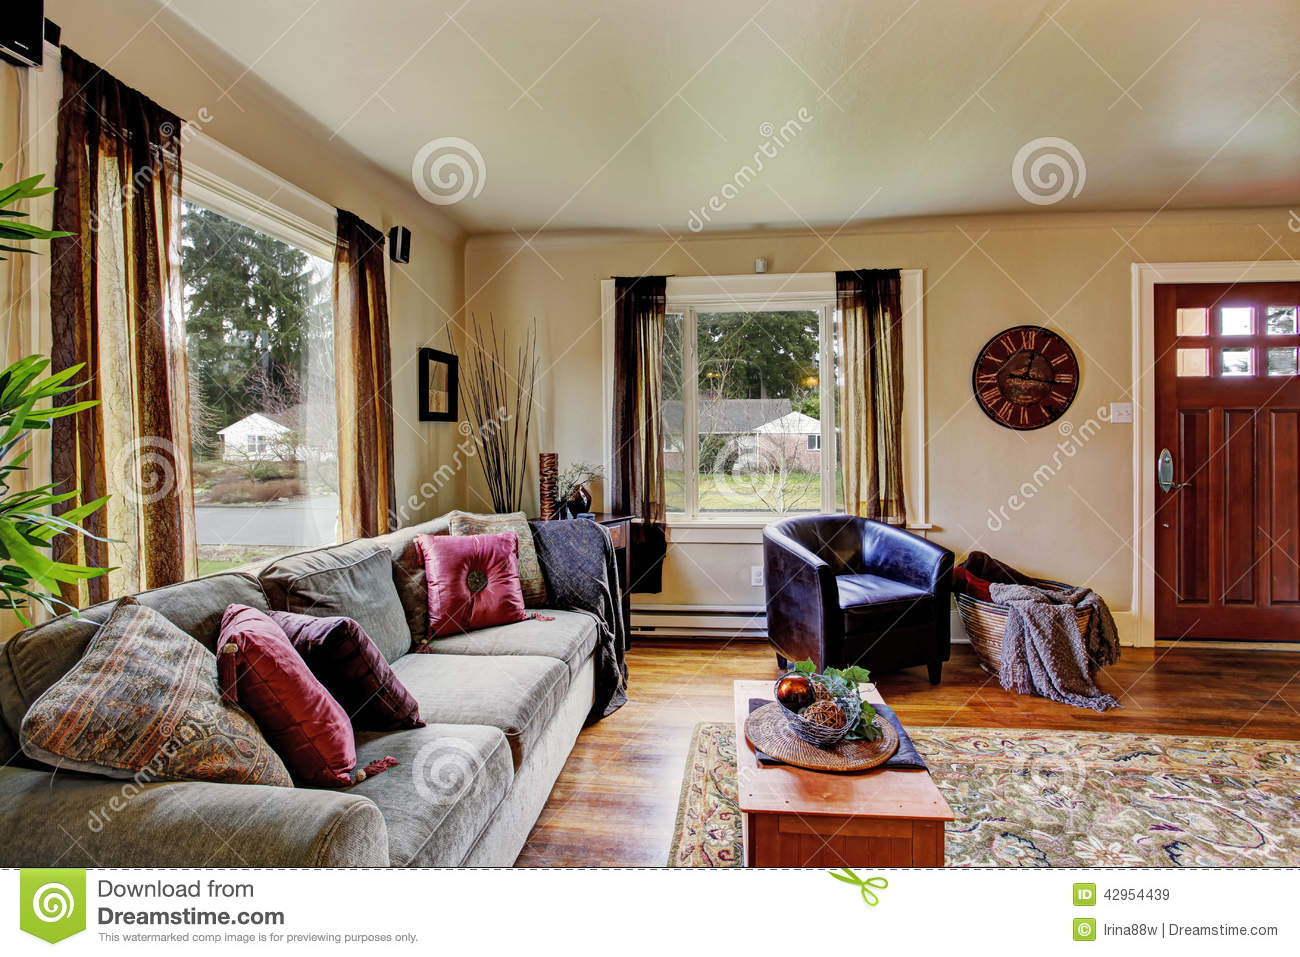 Int rieur de salon dans la maison am ricaine photo stock image 42954439 - Aoutat dans la maison ...